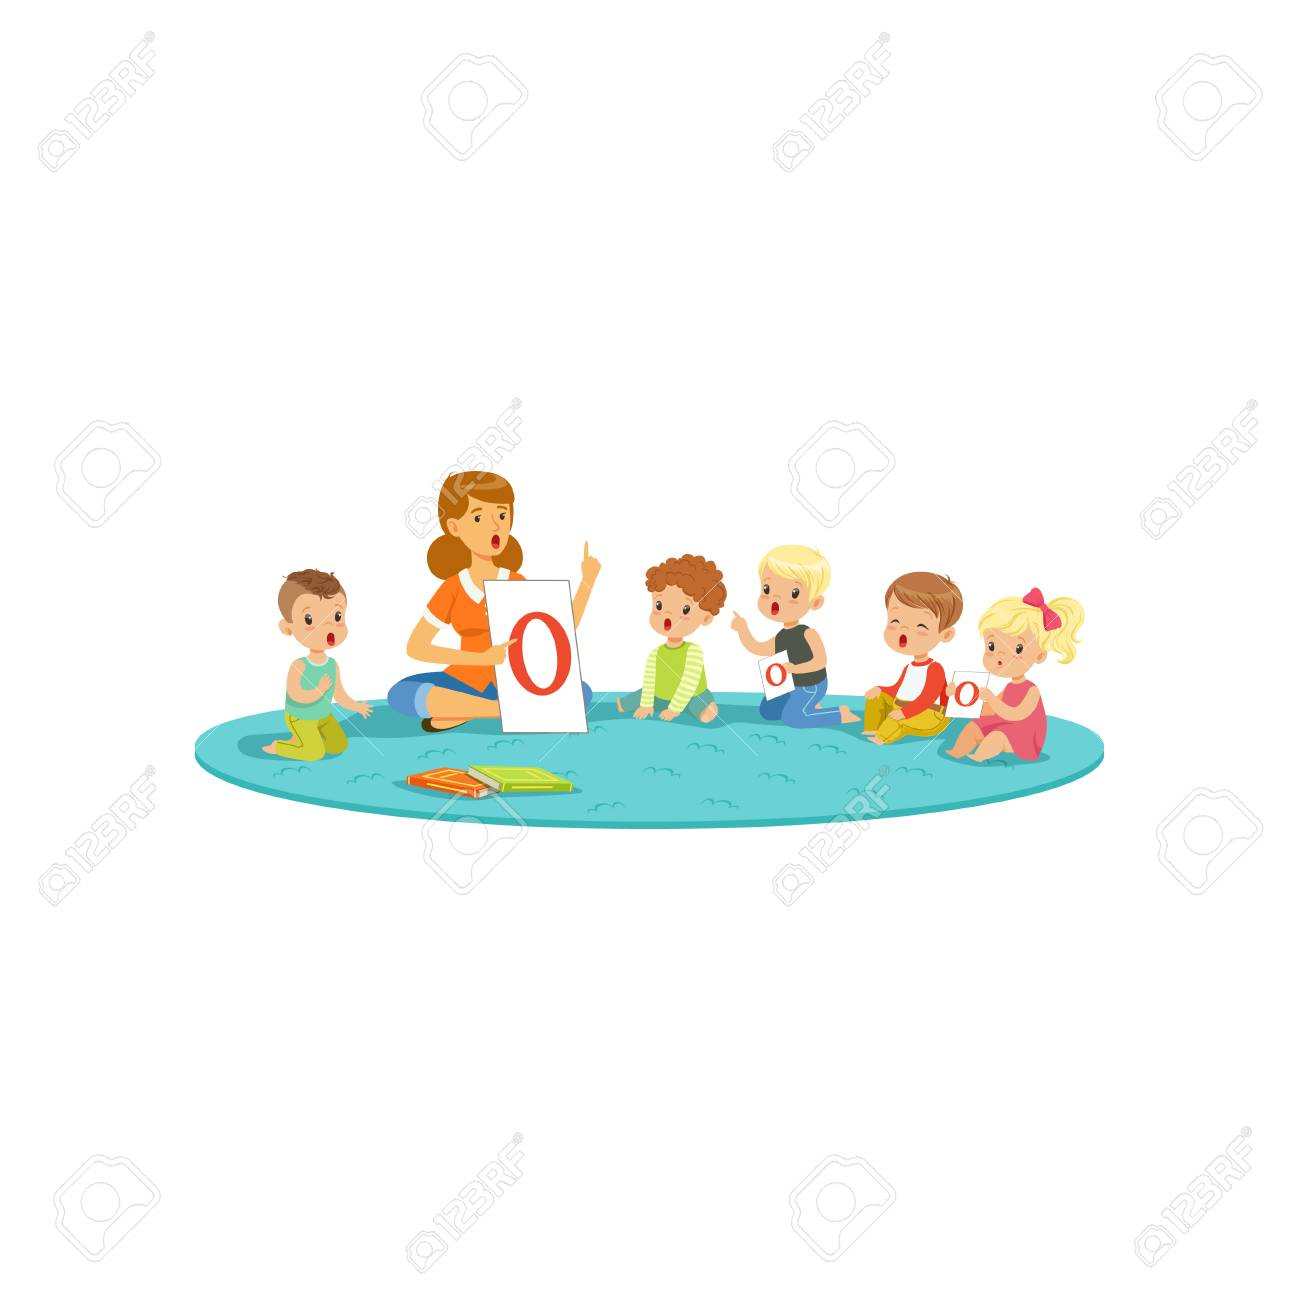 group of little kids sitting on carpet and learning letters with